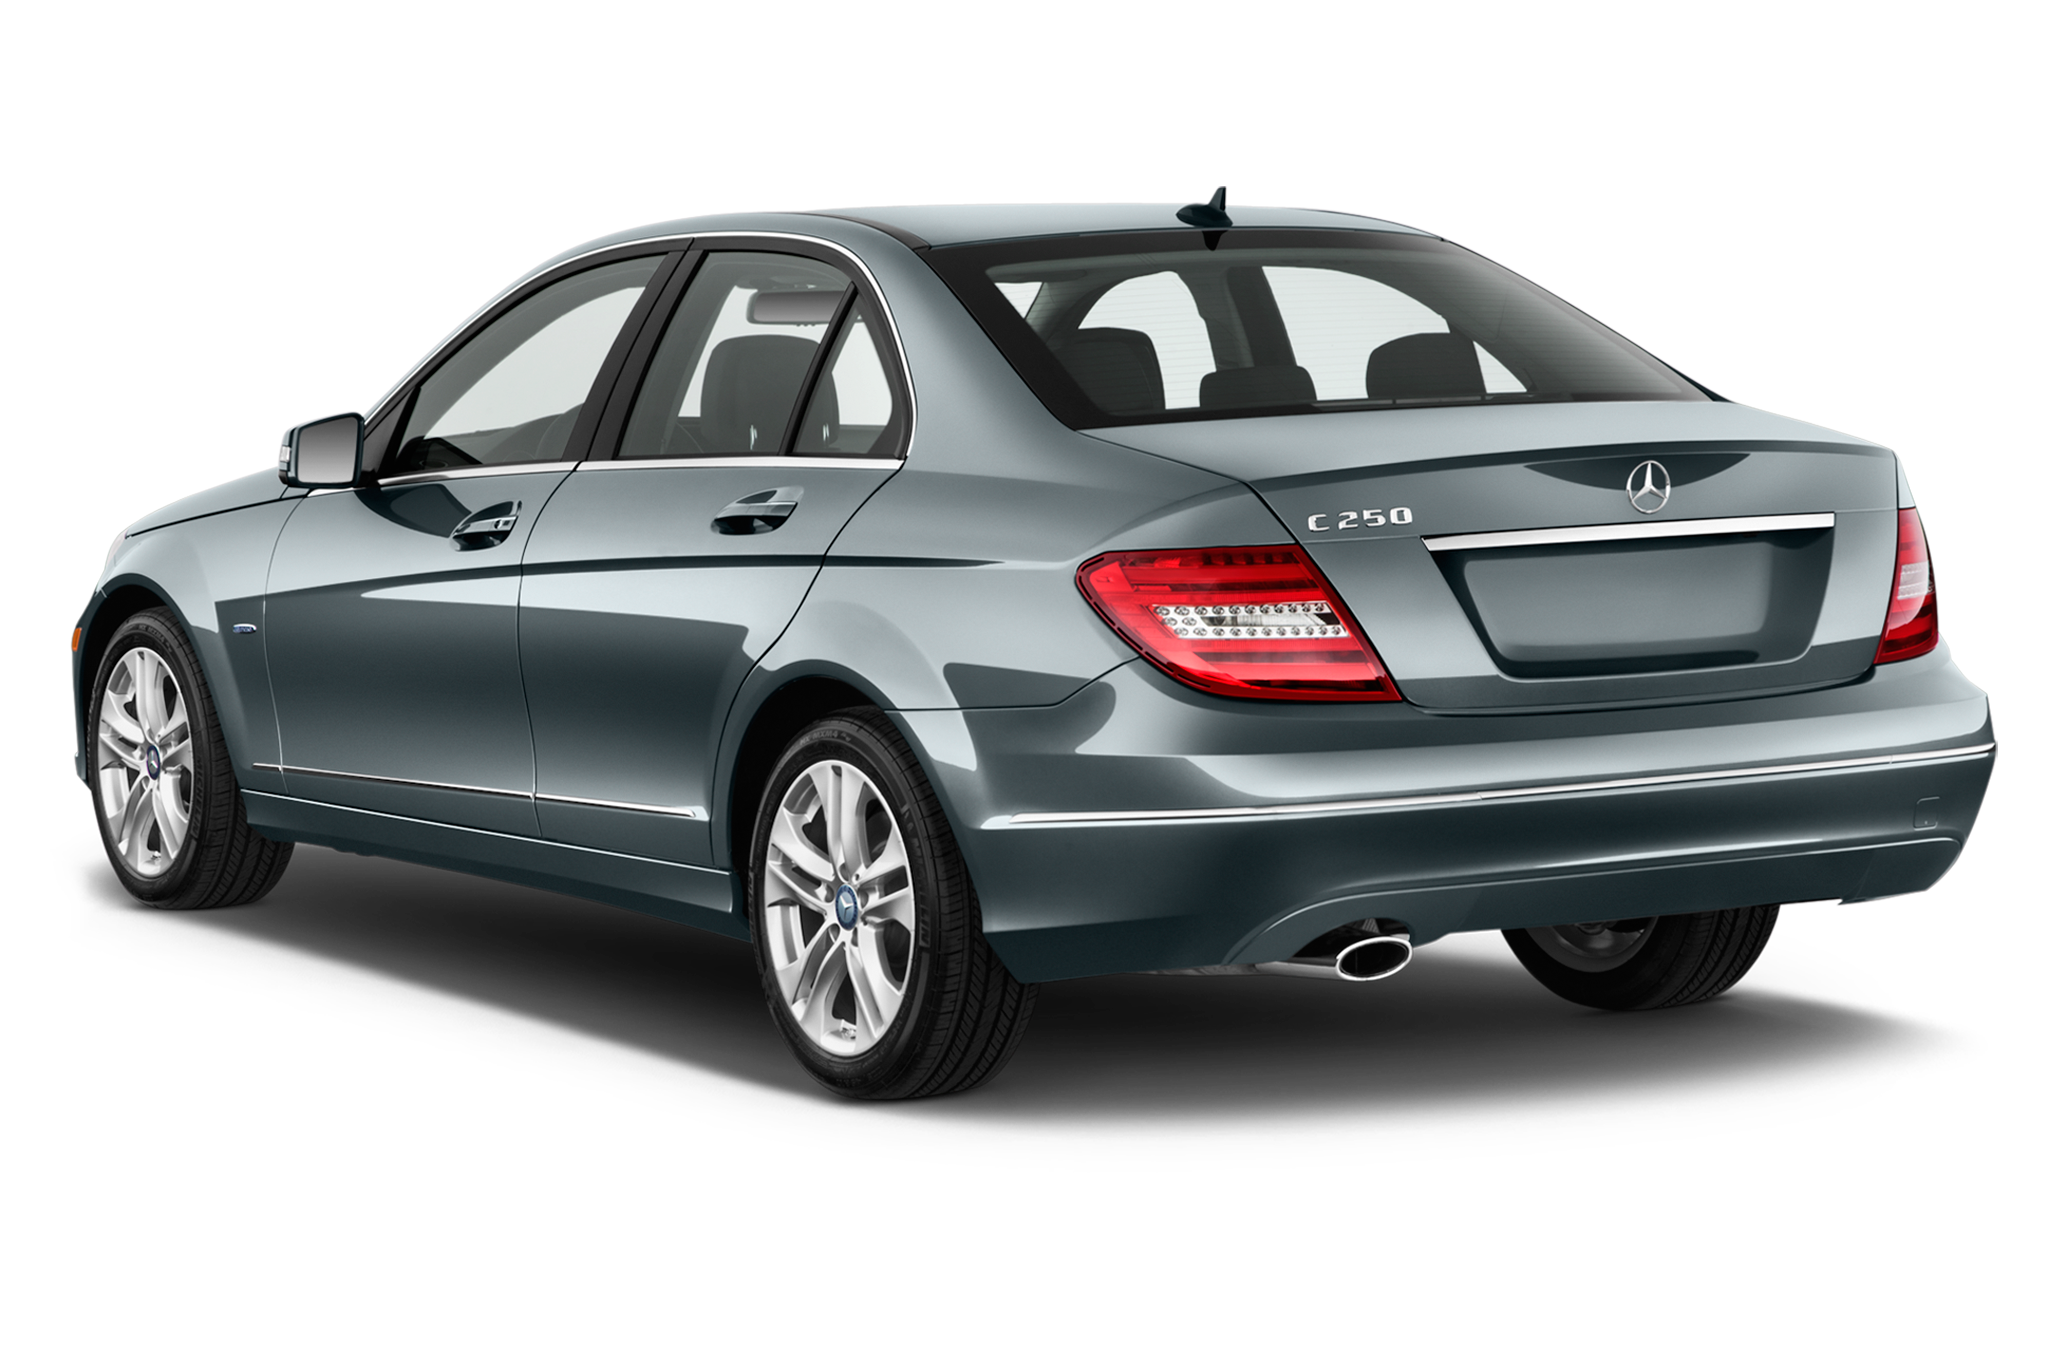 2012 mercedes benz c250 c350 coupe first drive. Black Bedroom Furniture Sets. Home Design Ideas